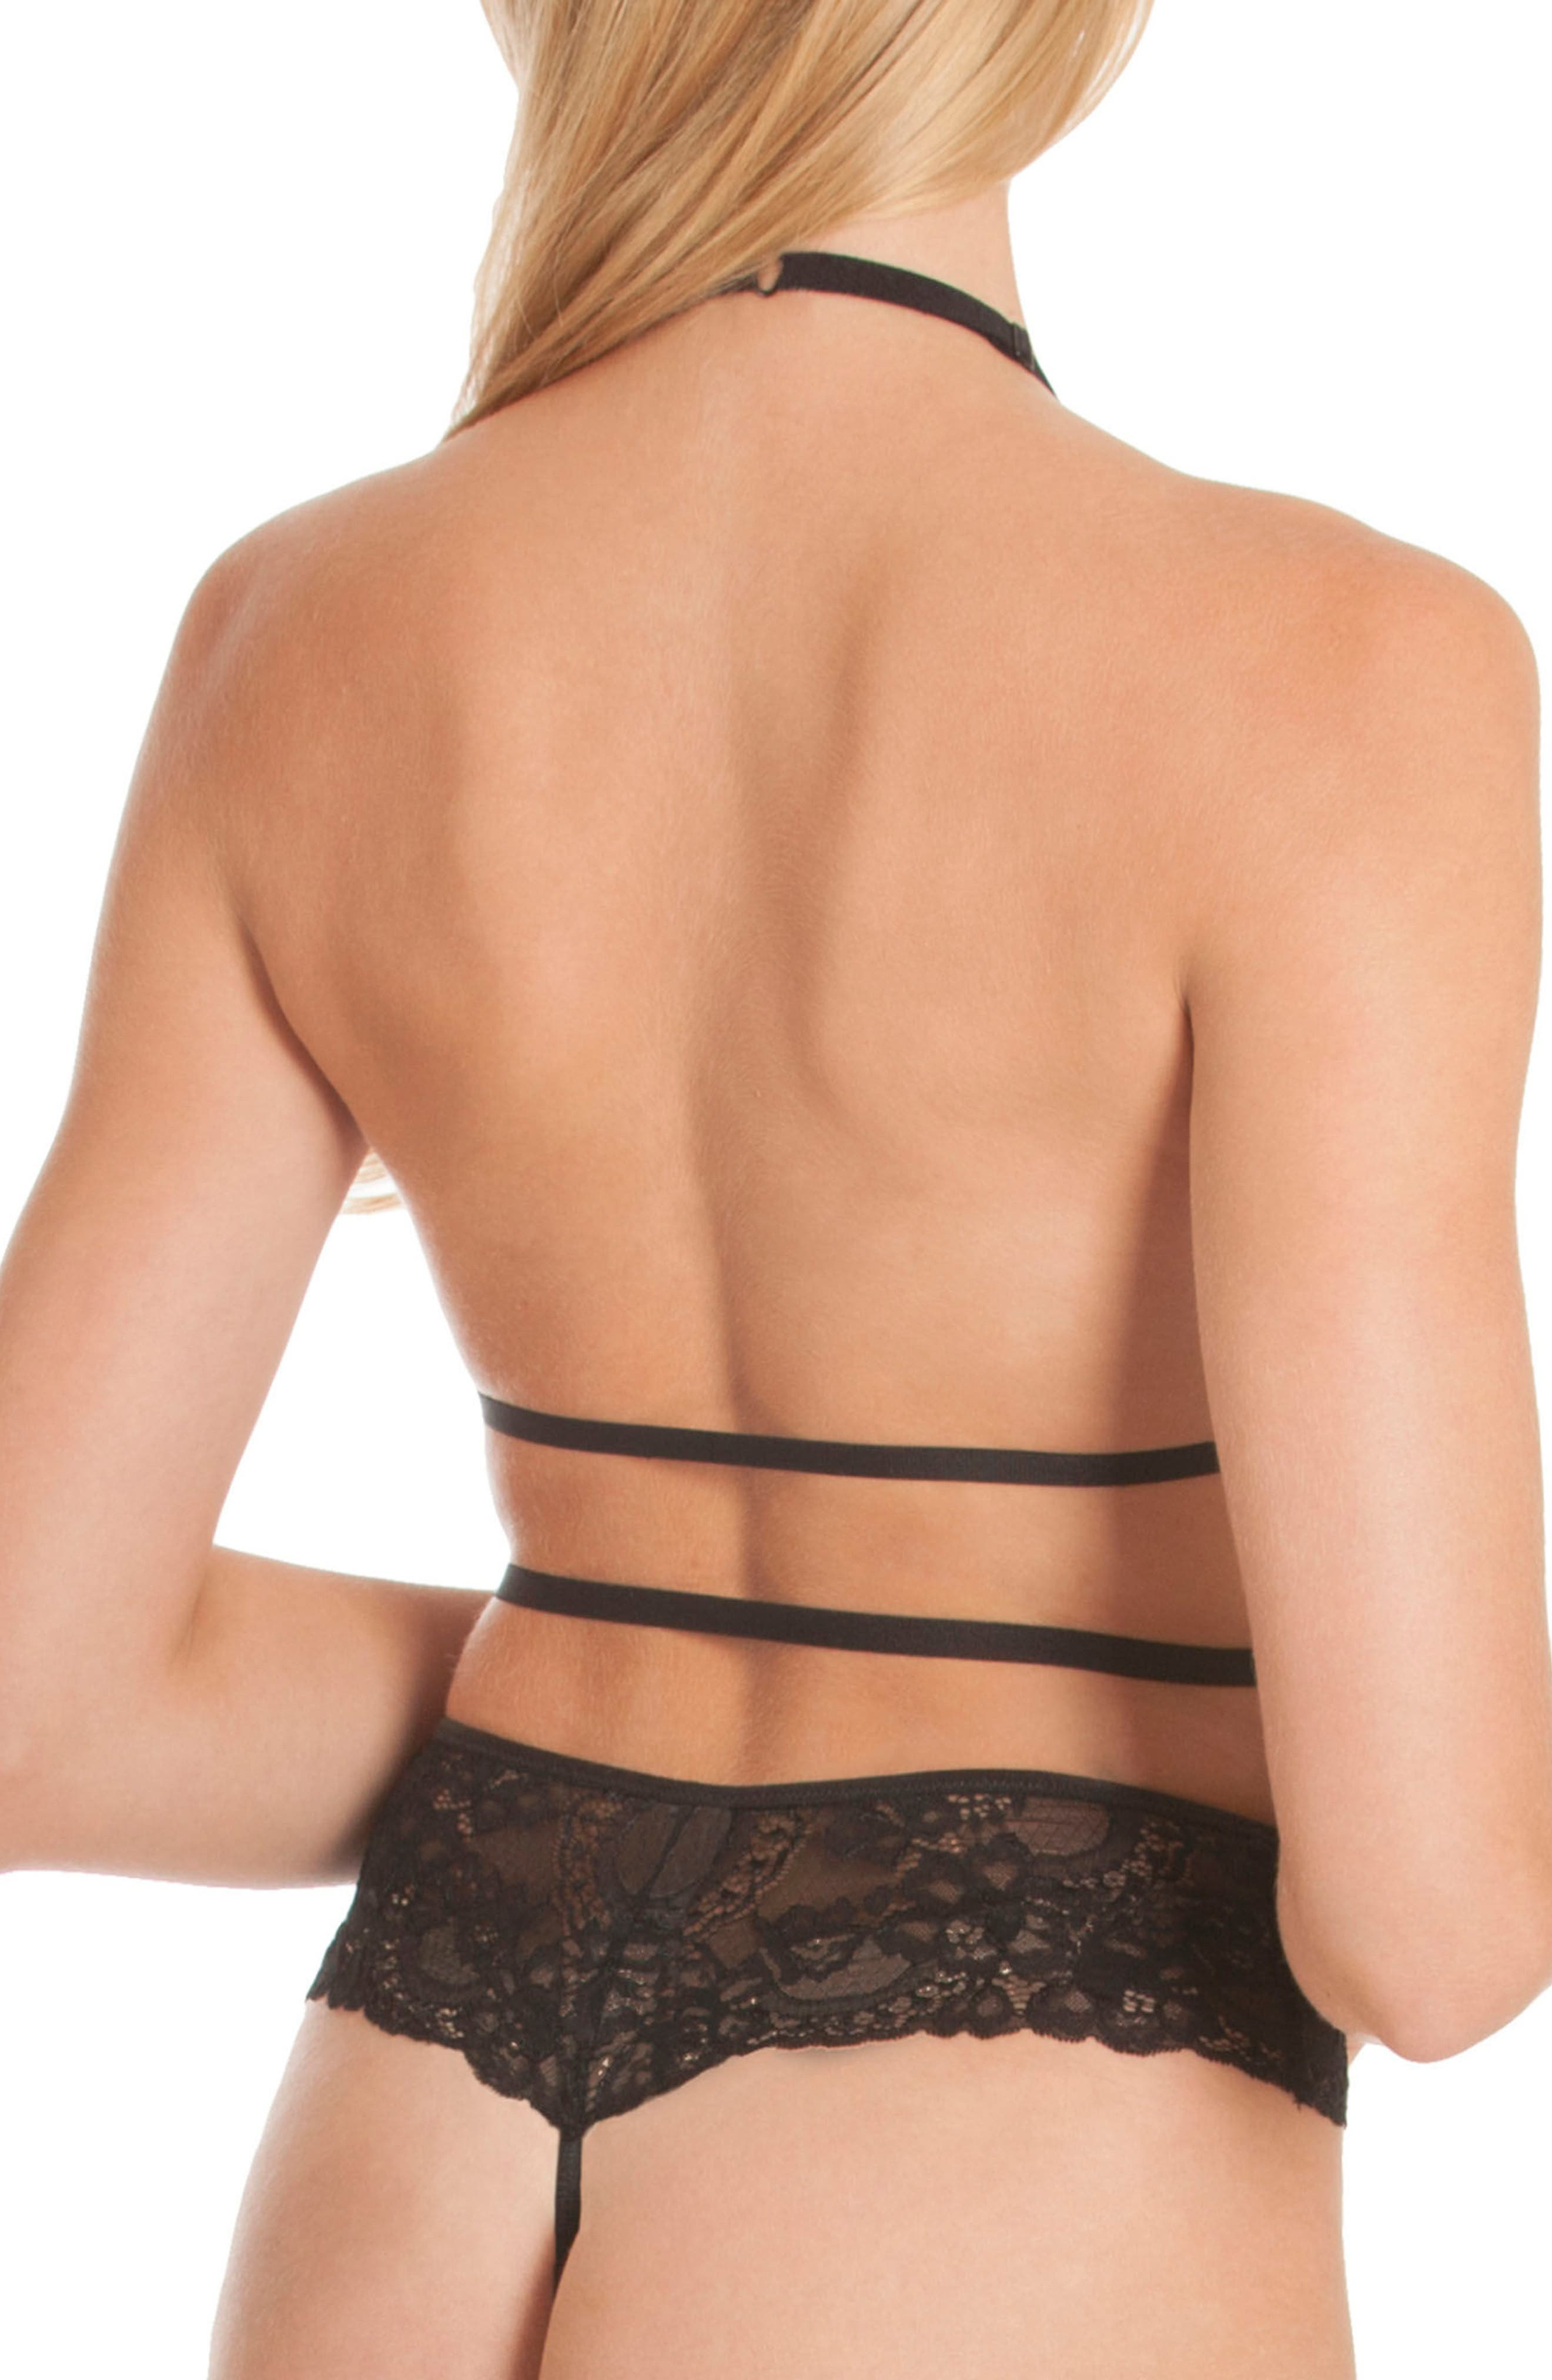 Mirage Lace Teddy,                             Alternate thumbnail 2, color,                             Black